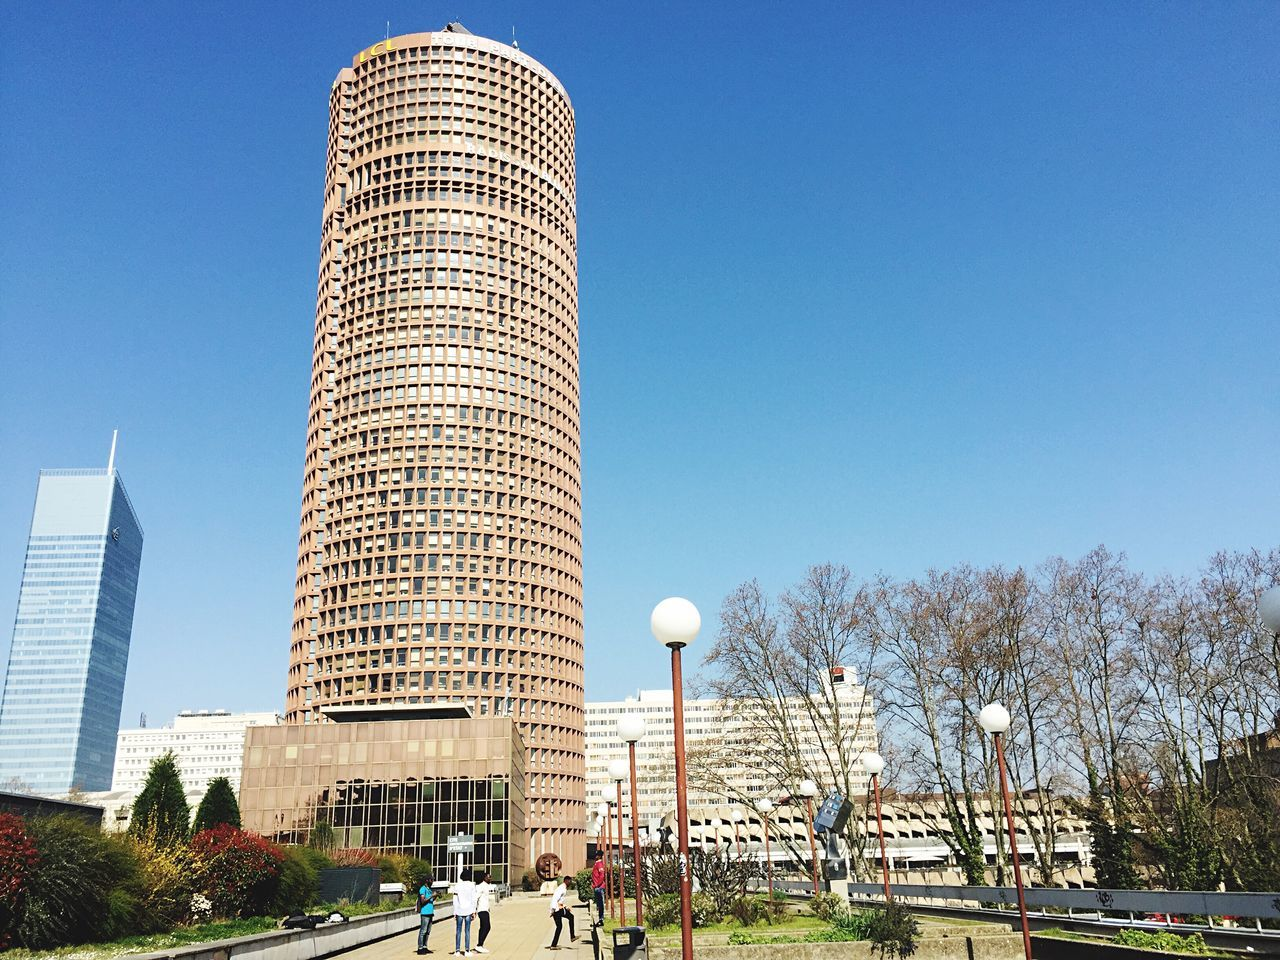 architecture, built structure, skyscraper, tall - high, building exterior, clear sky, tower, city, travel destinations, day, tree, outdoors, modern, no people, sky